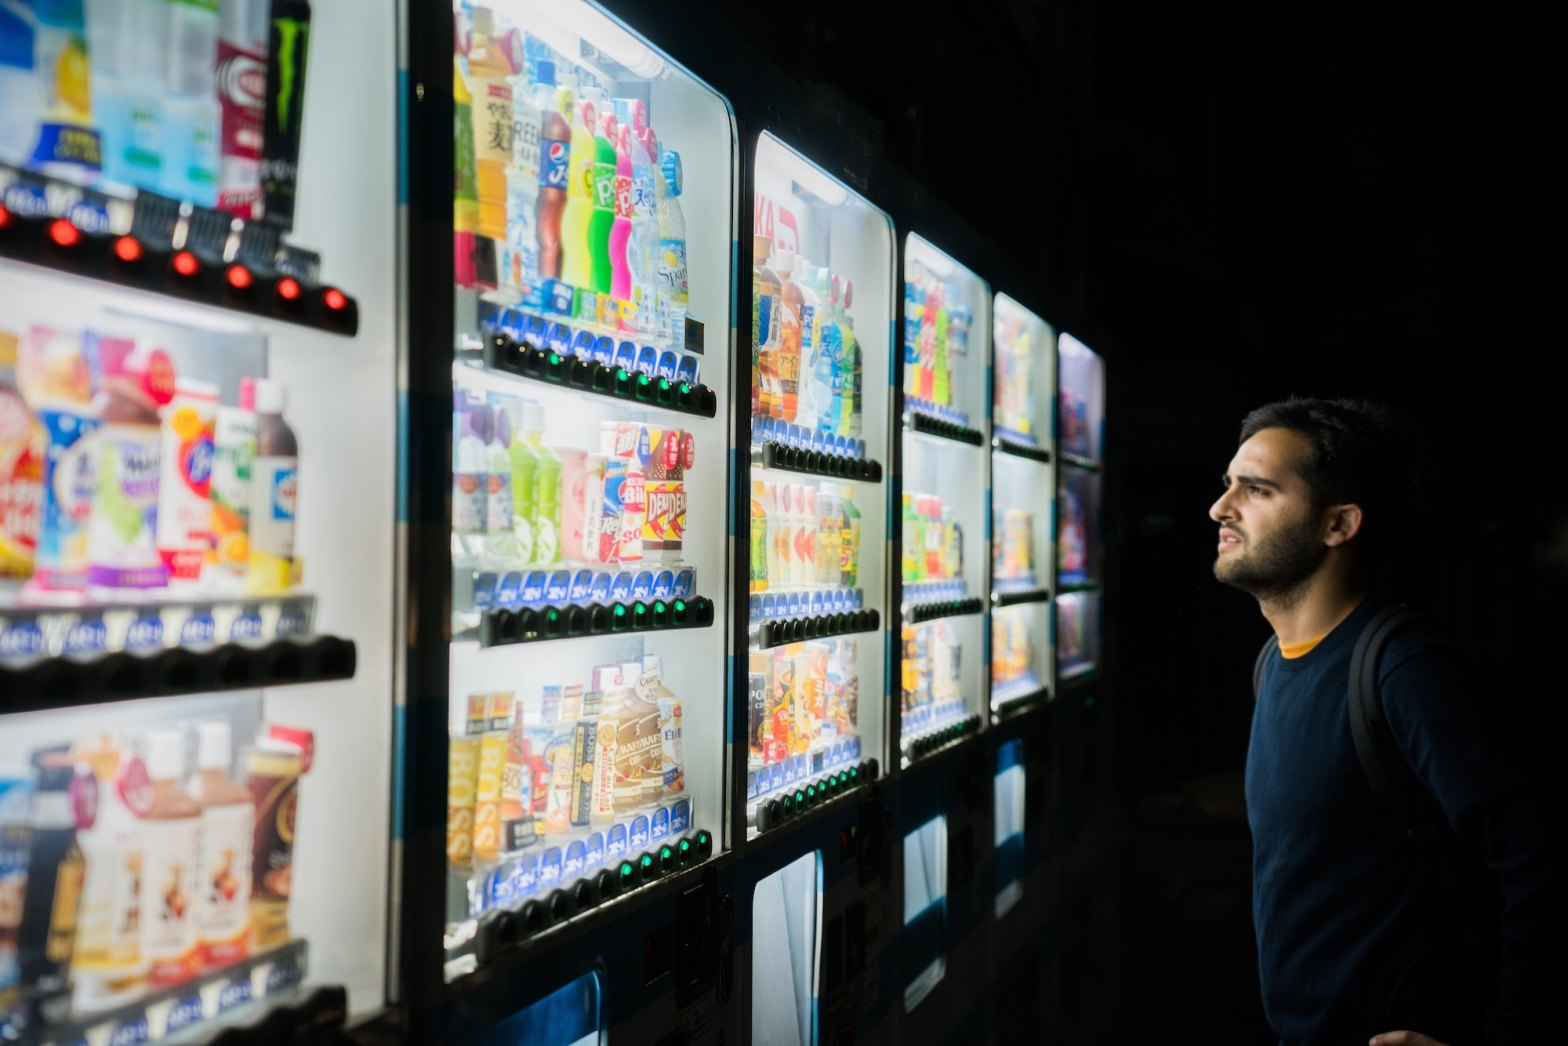 Man looking at vending machines